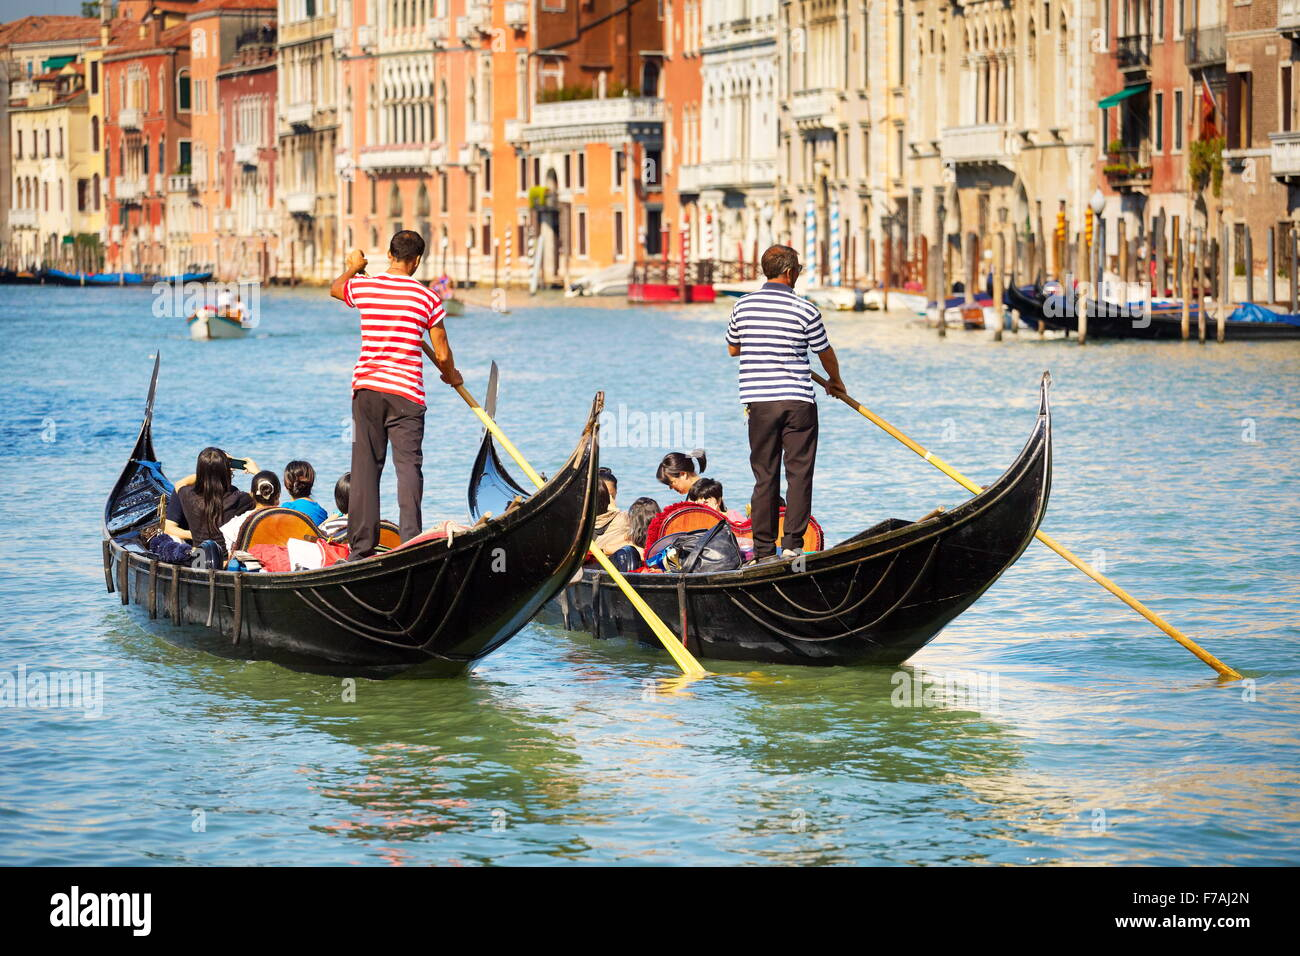 Grand Canal (Canal Grande) - two venetian gondola with tourists, Venice, Italy - Stock Image